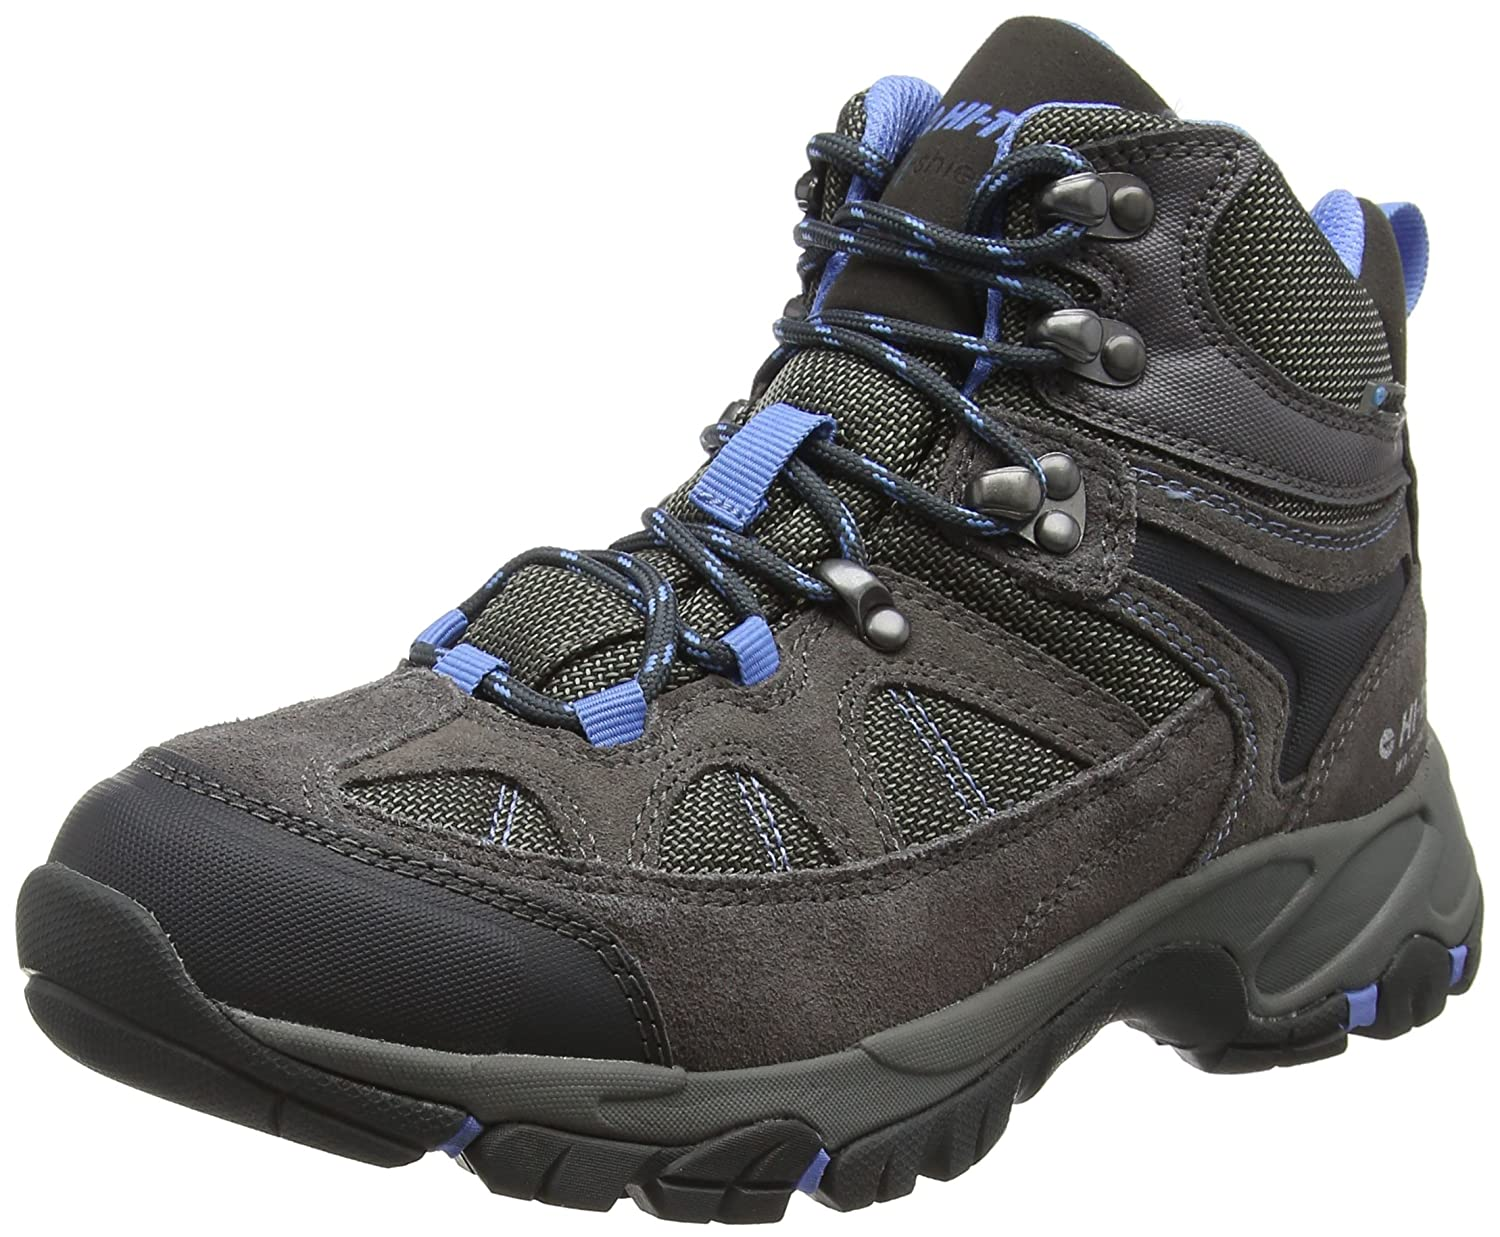 b6af4f6f917 Hi-Tec Women's Altitude Lite Ii I Waterproof High Rise Hiking Boots